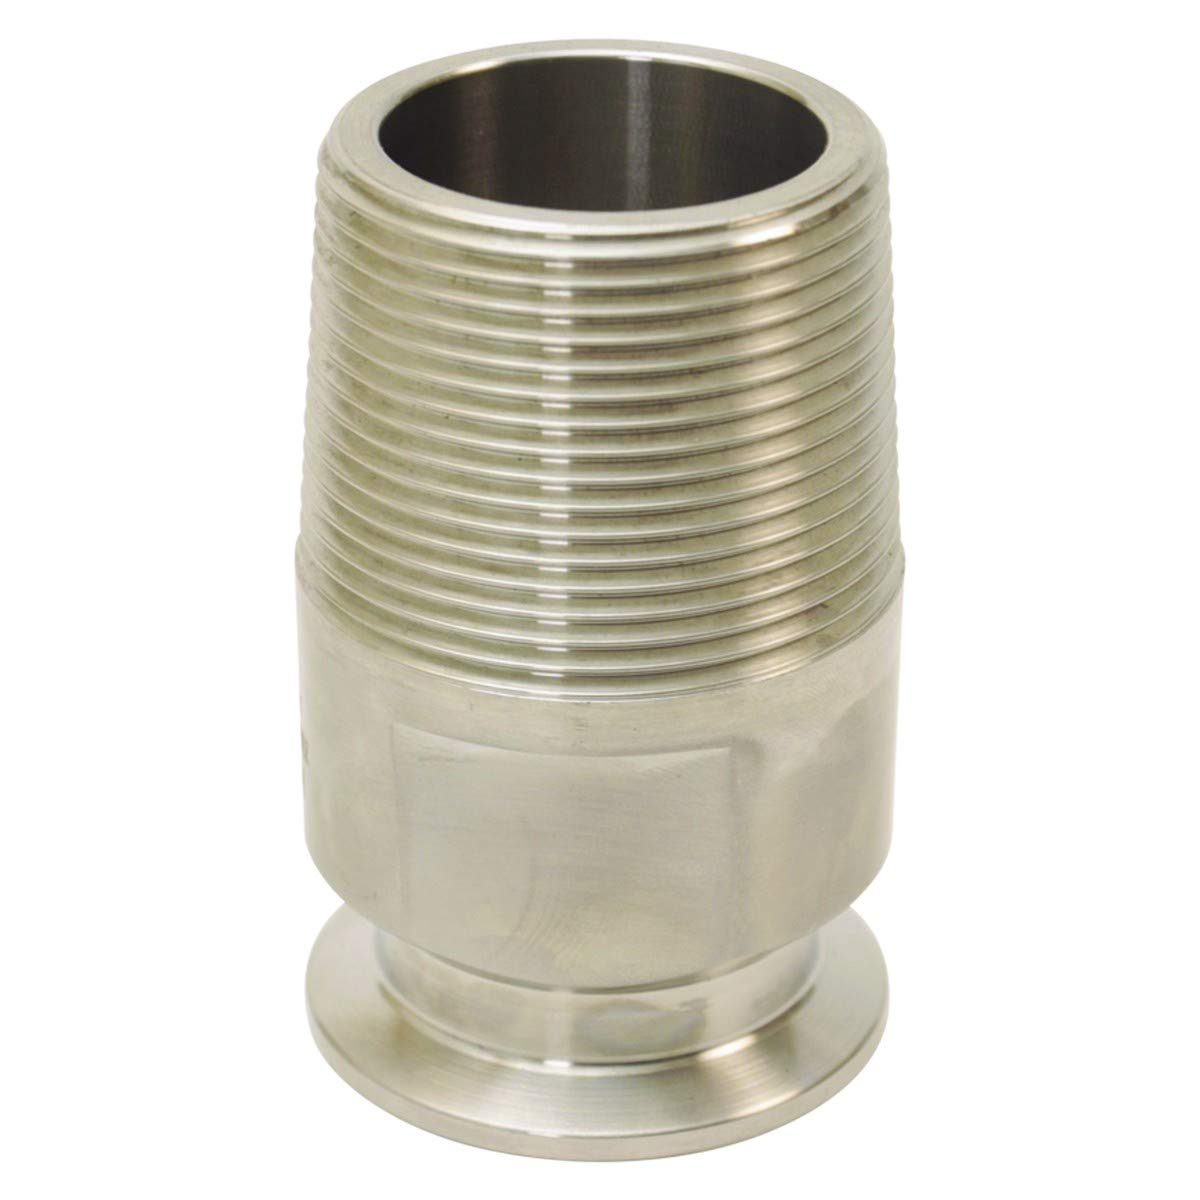 Threaded Barrel Tap | Tri Clamp 1.5 inch for 1.75 in. Bung Hole - Stainless Steel SS304 - Glacier Tanks - (2 Pack)